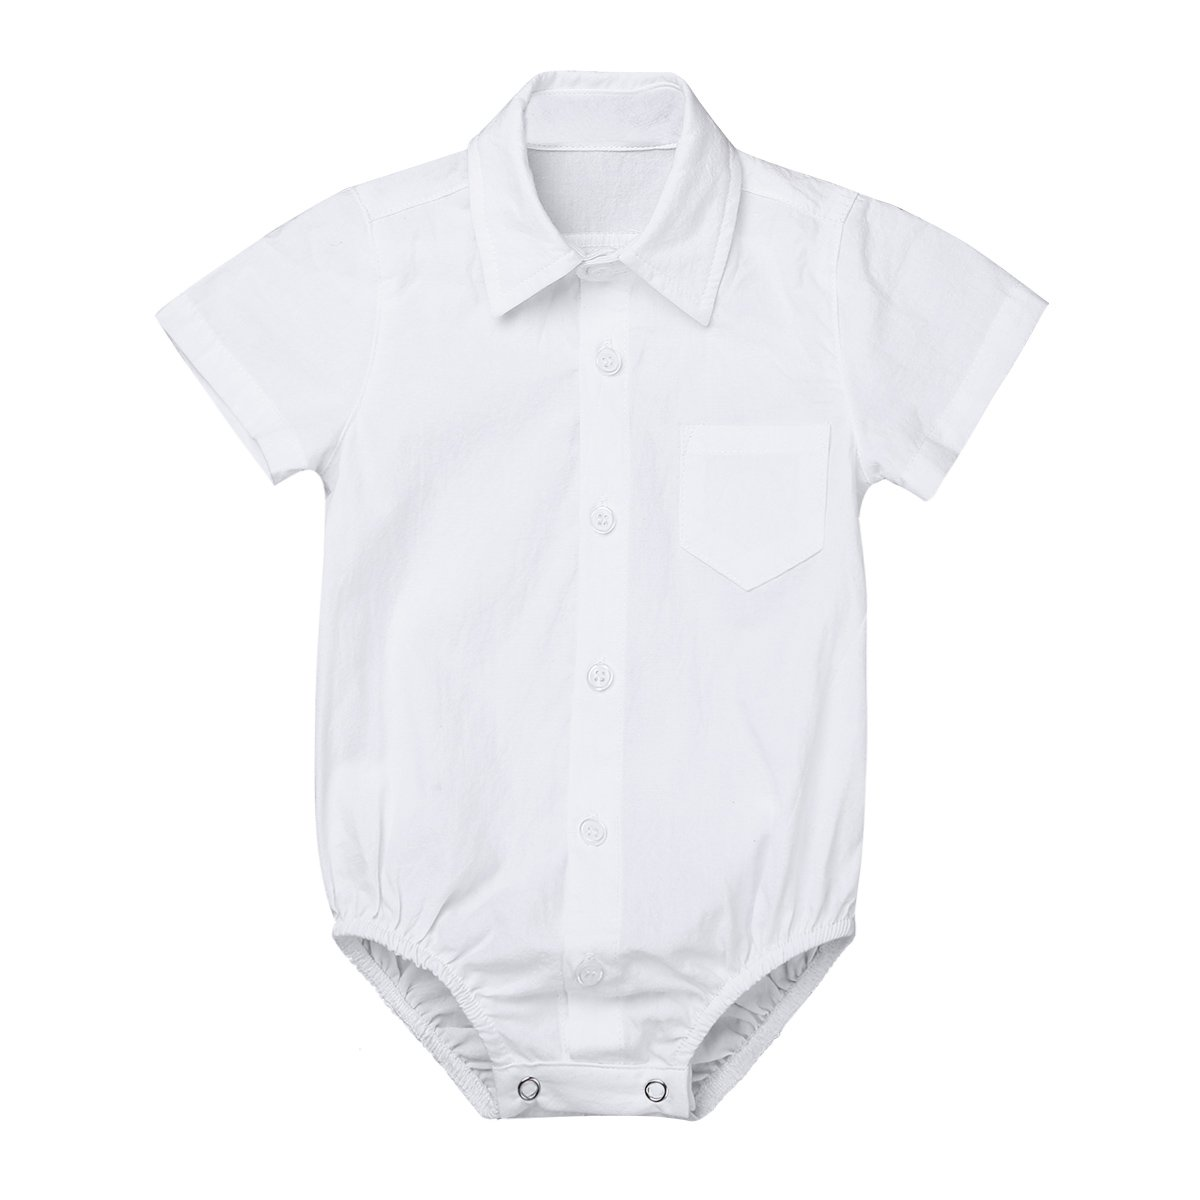 MSemis Baby Boys' White Formal Dress Shirts Gentleman Romper Bodysuit Wedding Party Outfits Short Sleeves White 0-3 Months